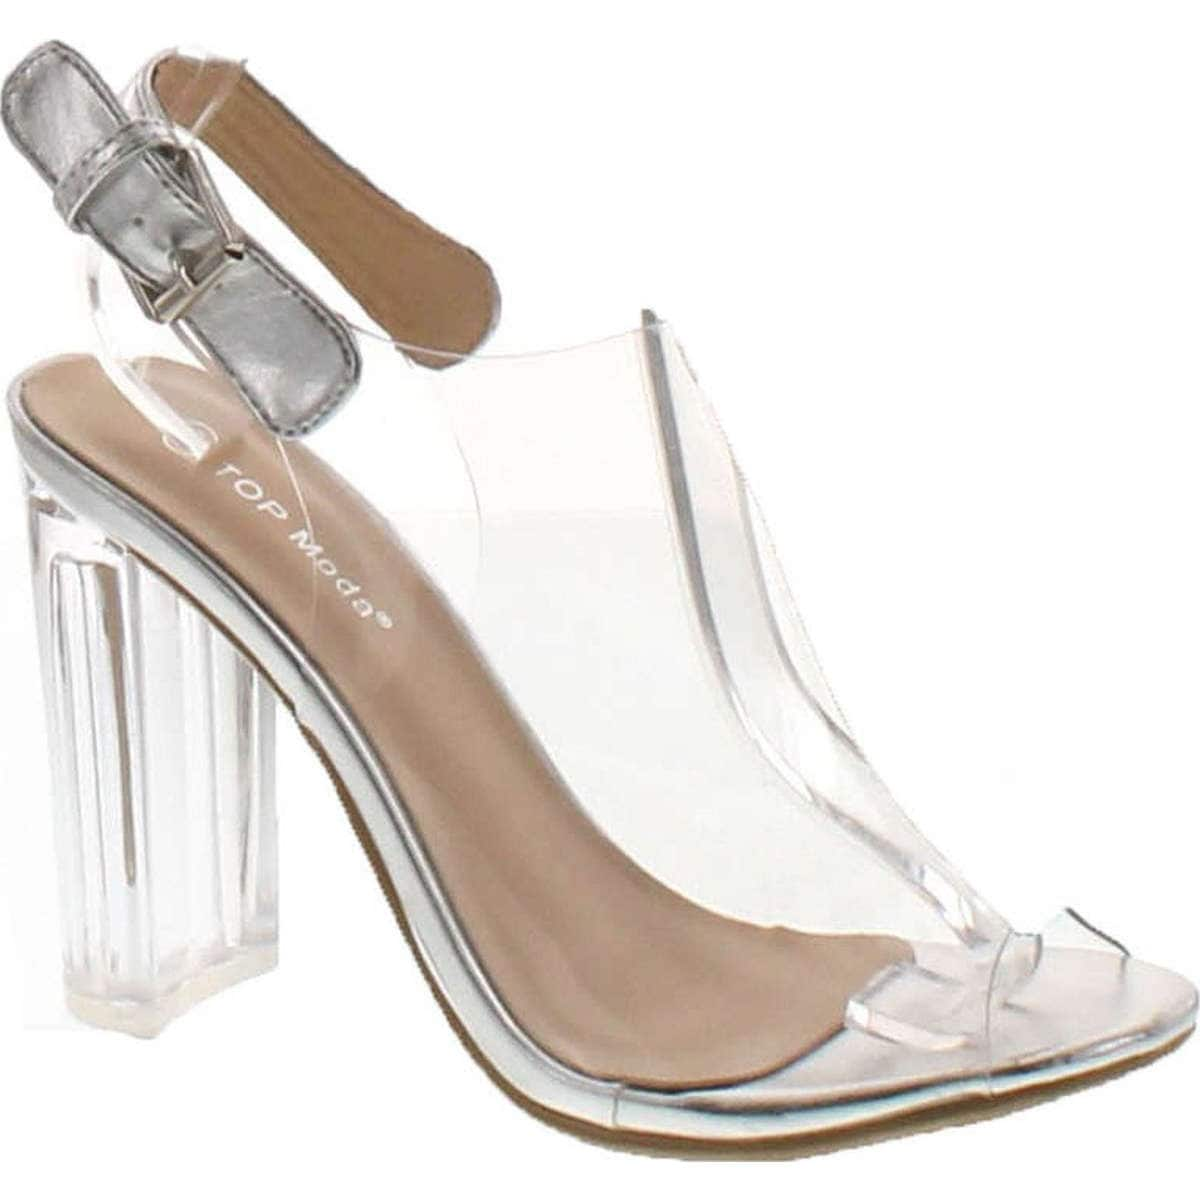 cddbc30c44 Shop Top Moda Fenton 1 Womens Clear Chunky Heel Peep Toe Lucite Sandals -  Free Shipping On Orders Over $45 - Overstock - 14820288